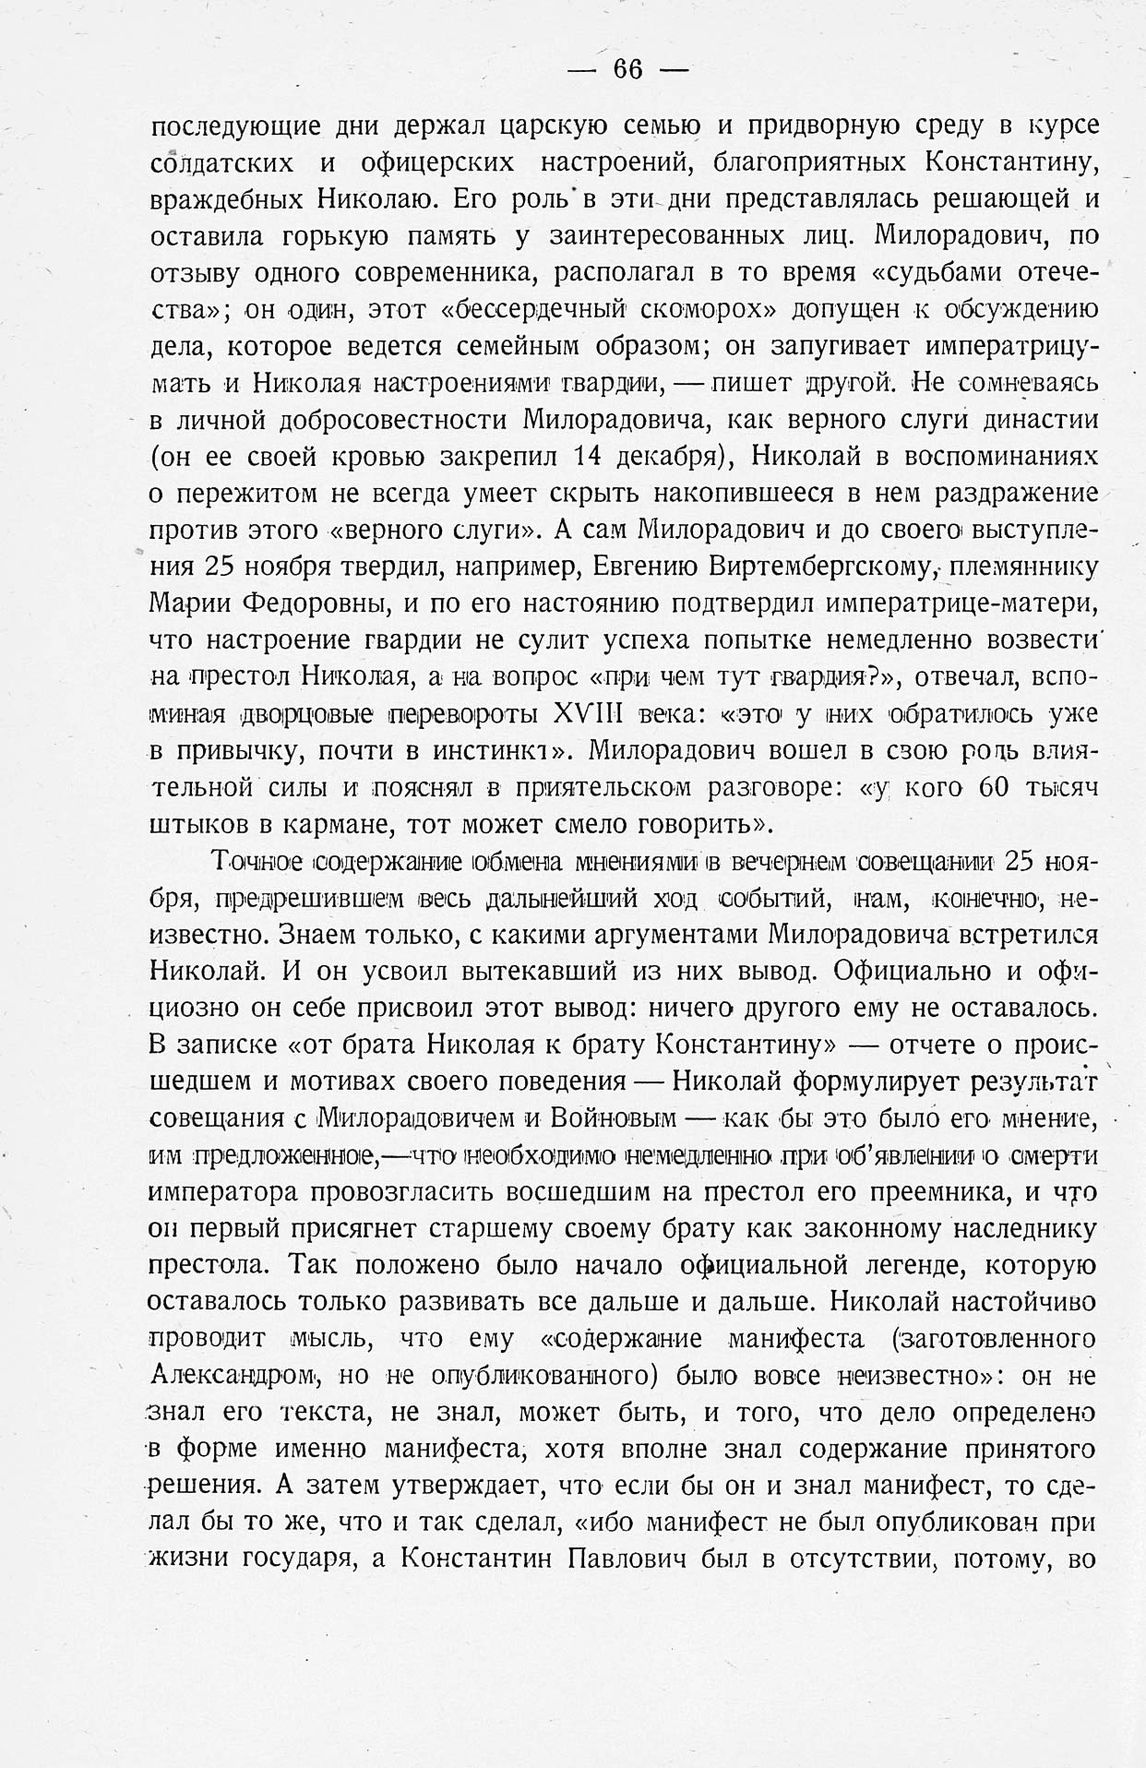 http://elib.shpl.ru/pages/565963/zooms/7